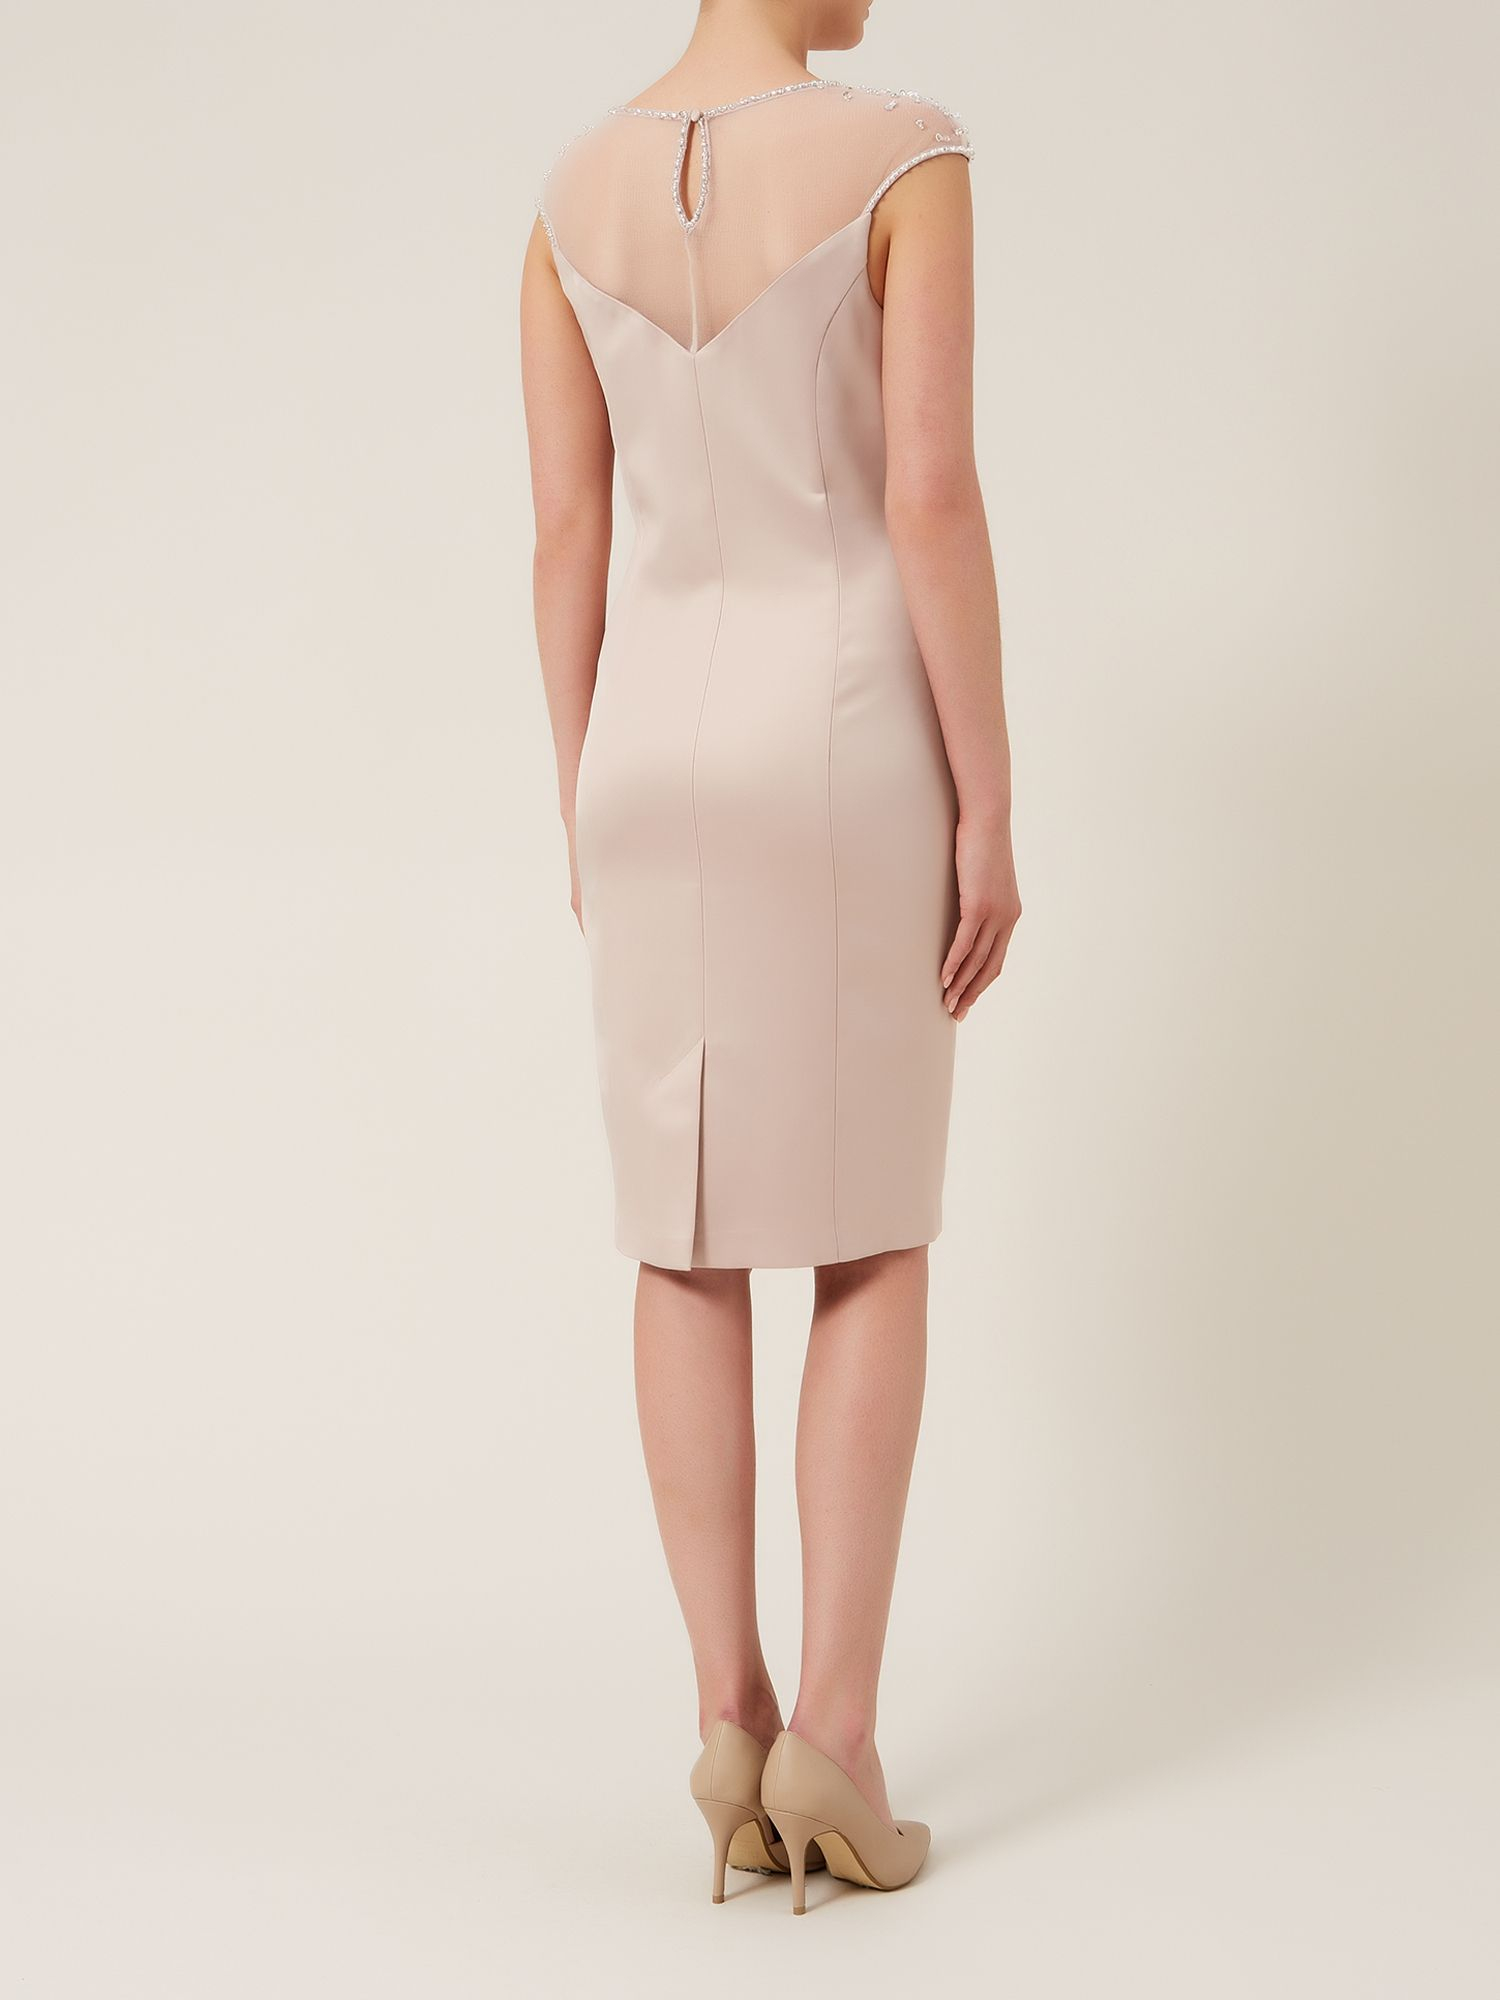 Alexon Sateen Embellished Dress In Natural Lyst Jolie Clothing Patsy Mini Gallery